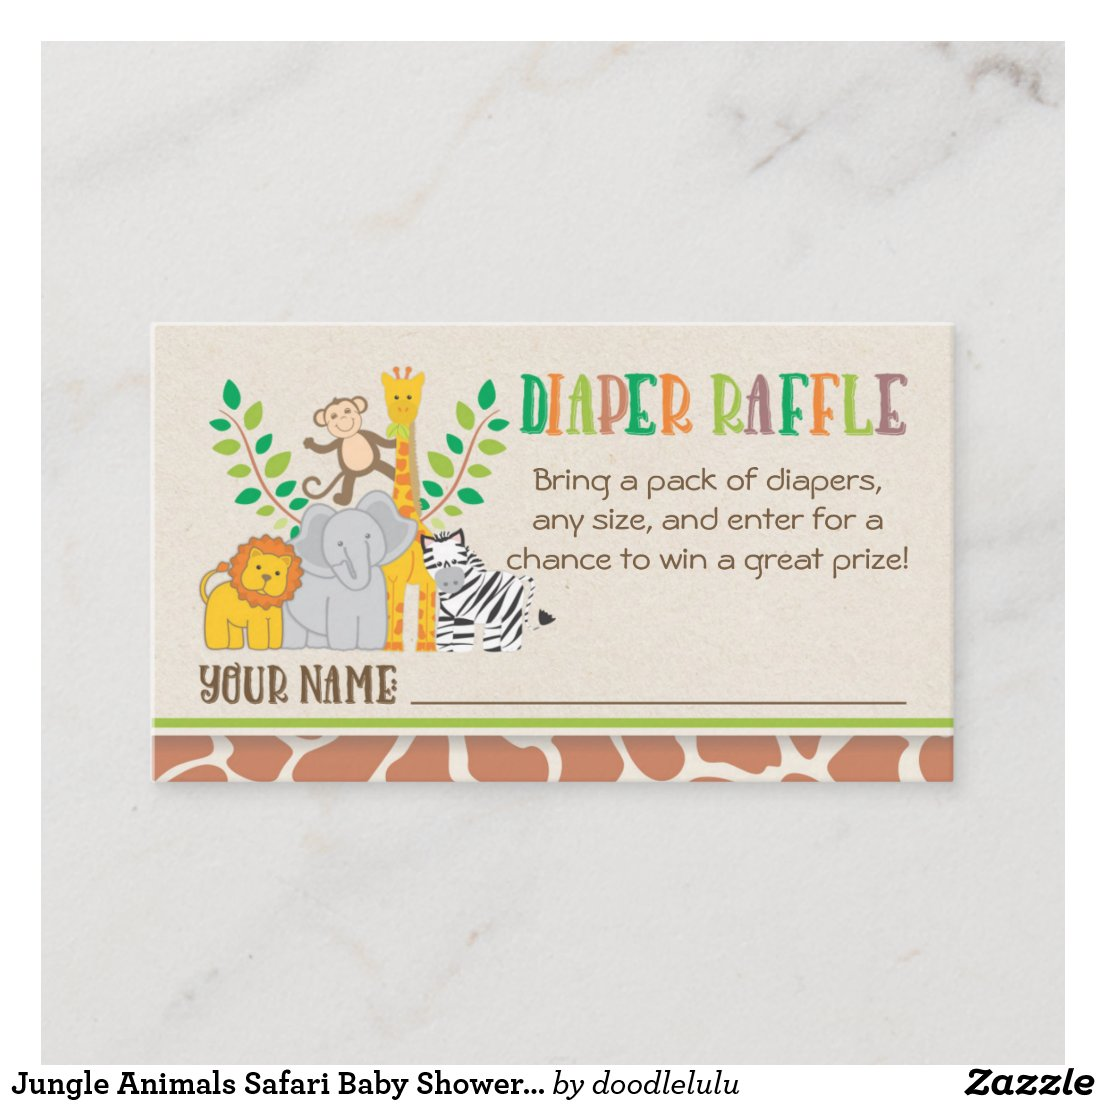 Jungle Animals Safari Baby Shower Diaper Raffle Enclosure Card